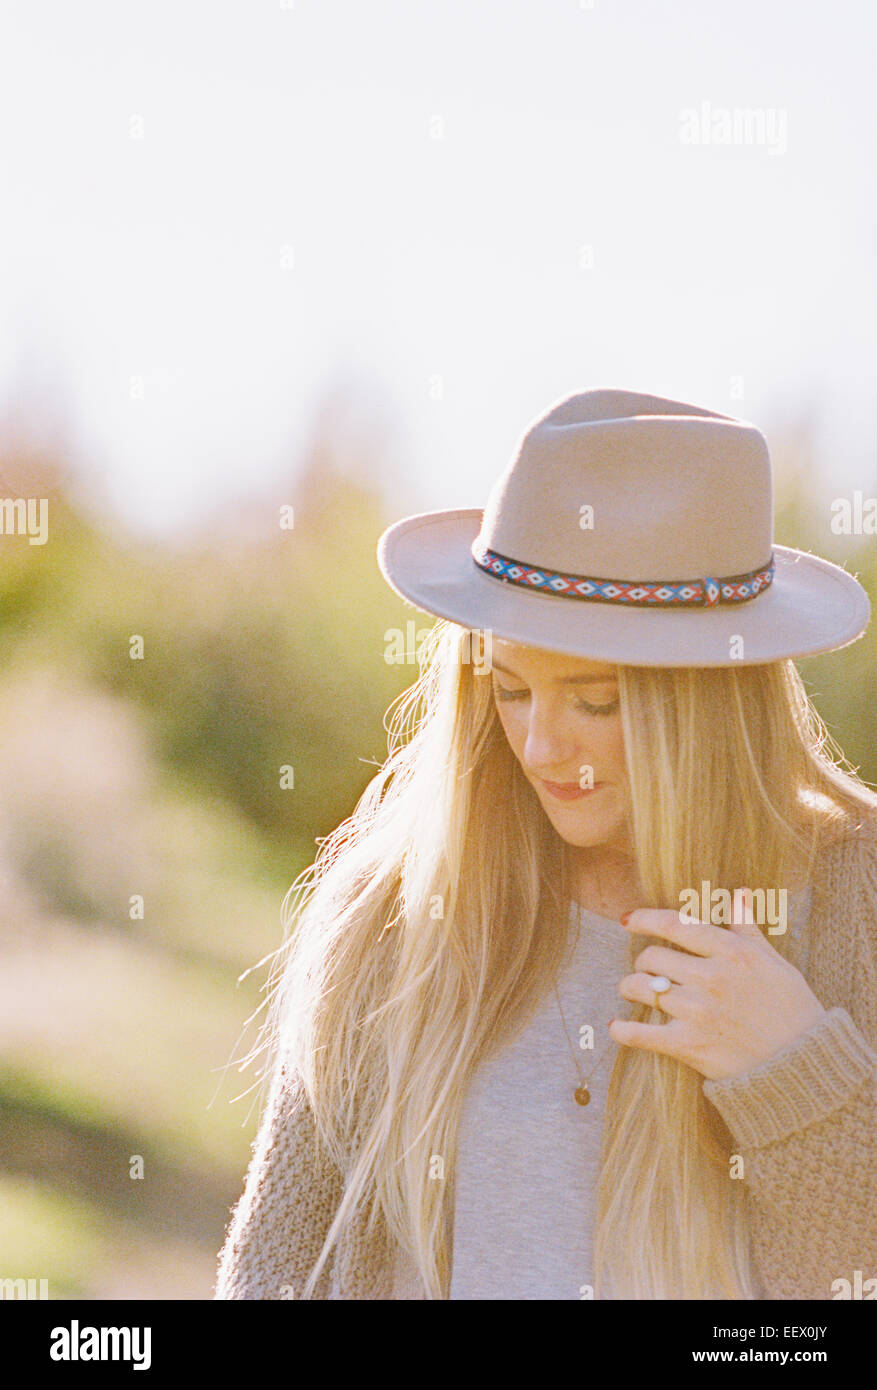 Woman with long blond hair, wearing a hat. - Stock Image